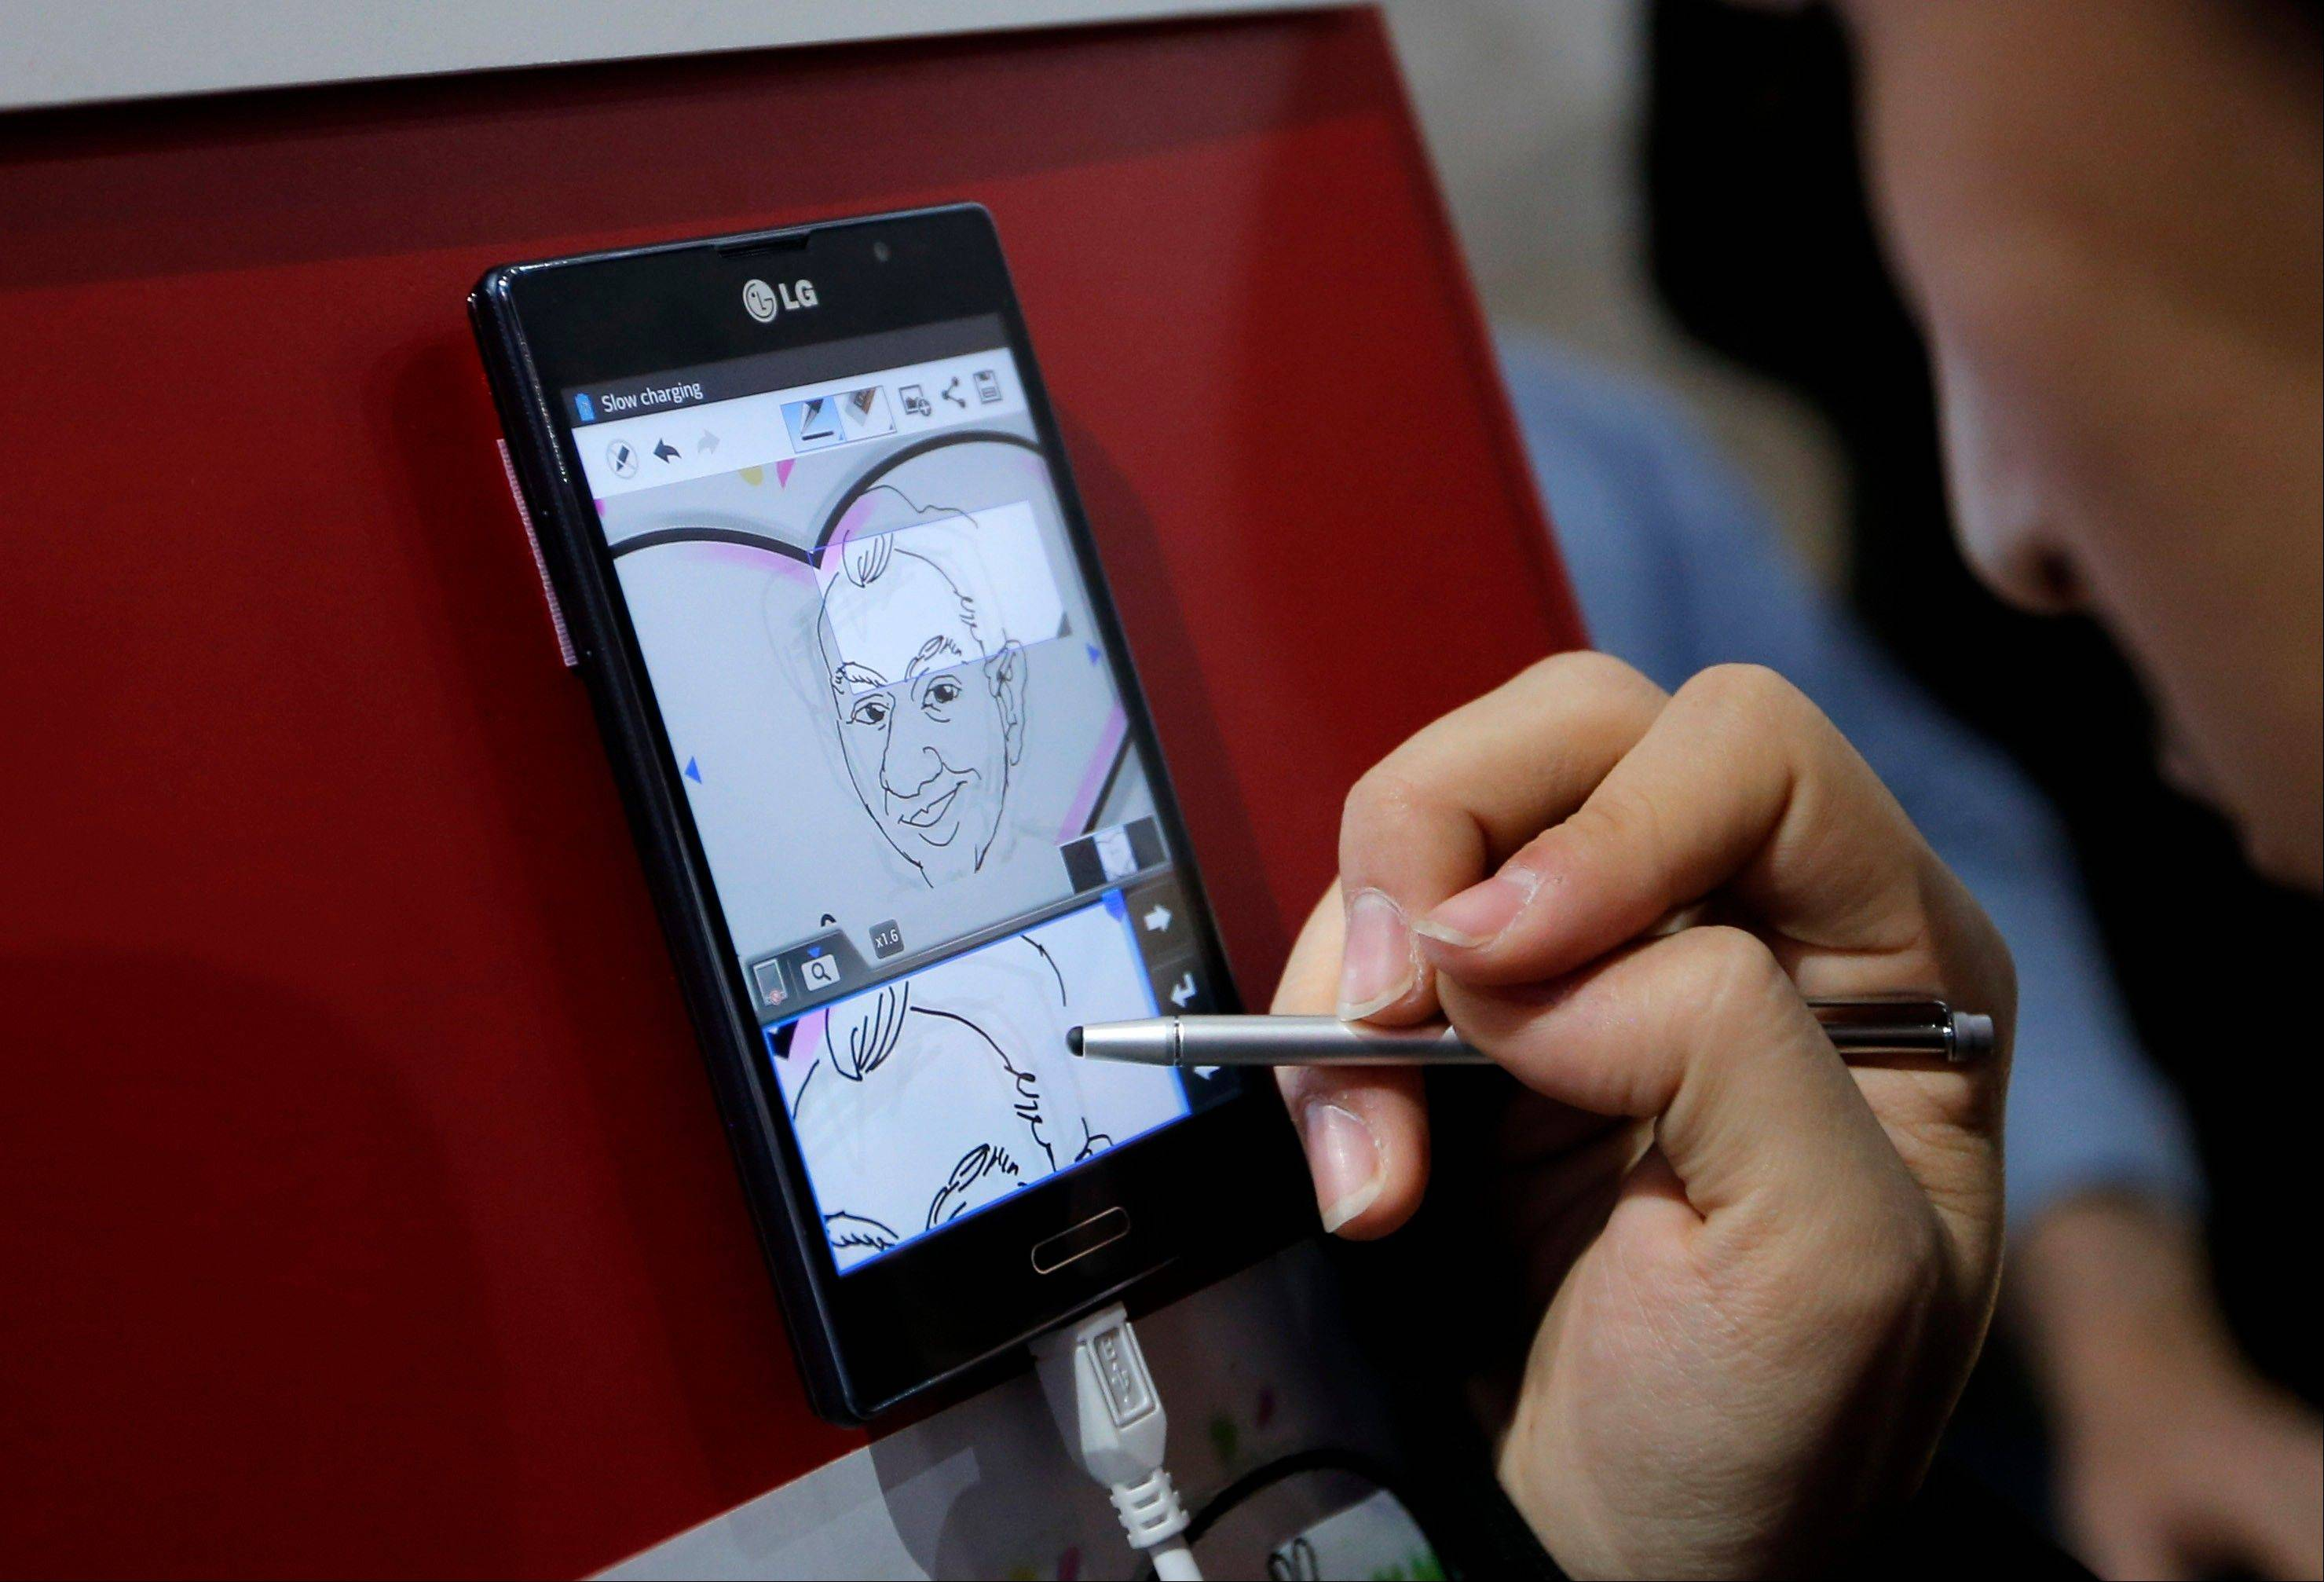 An artist draws a caricature to demonstrate the Panorama Note feature on LG smartphones at the International Consumer Electronics Show in Las Vegas, Tuesday, Jan. 8, 2013.